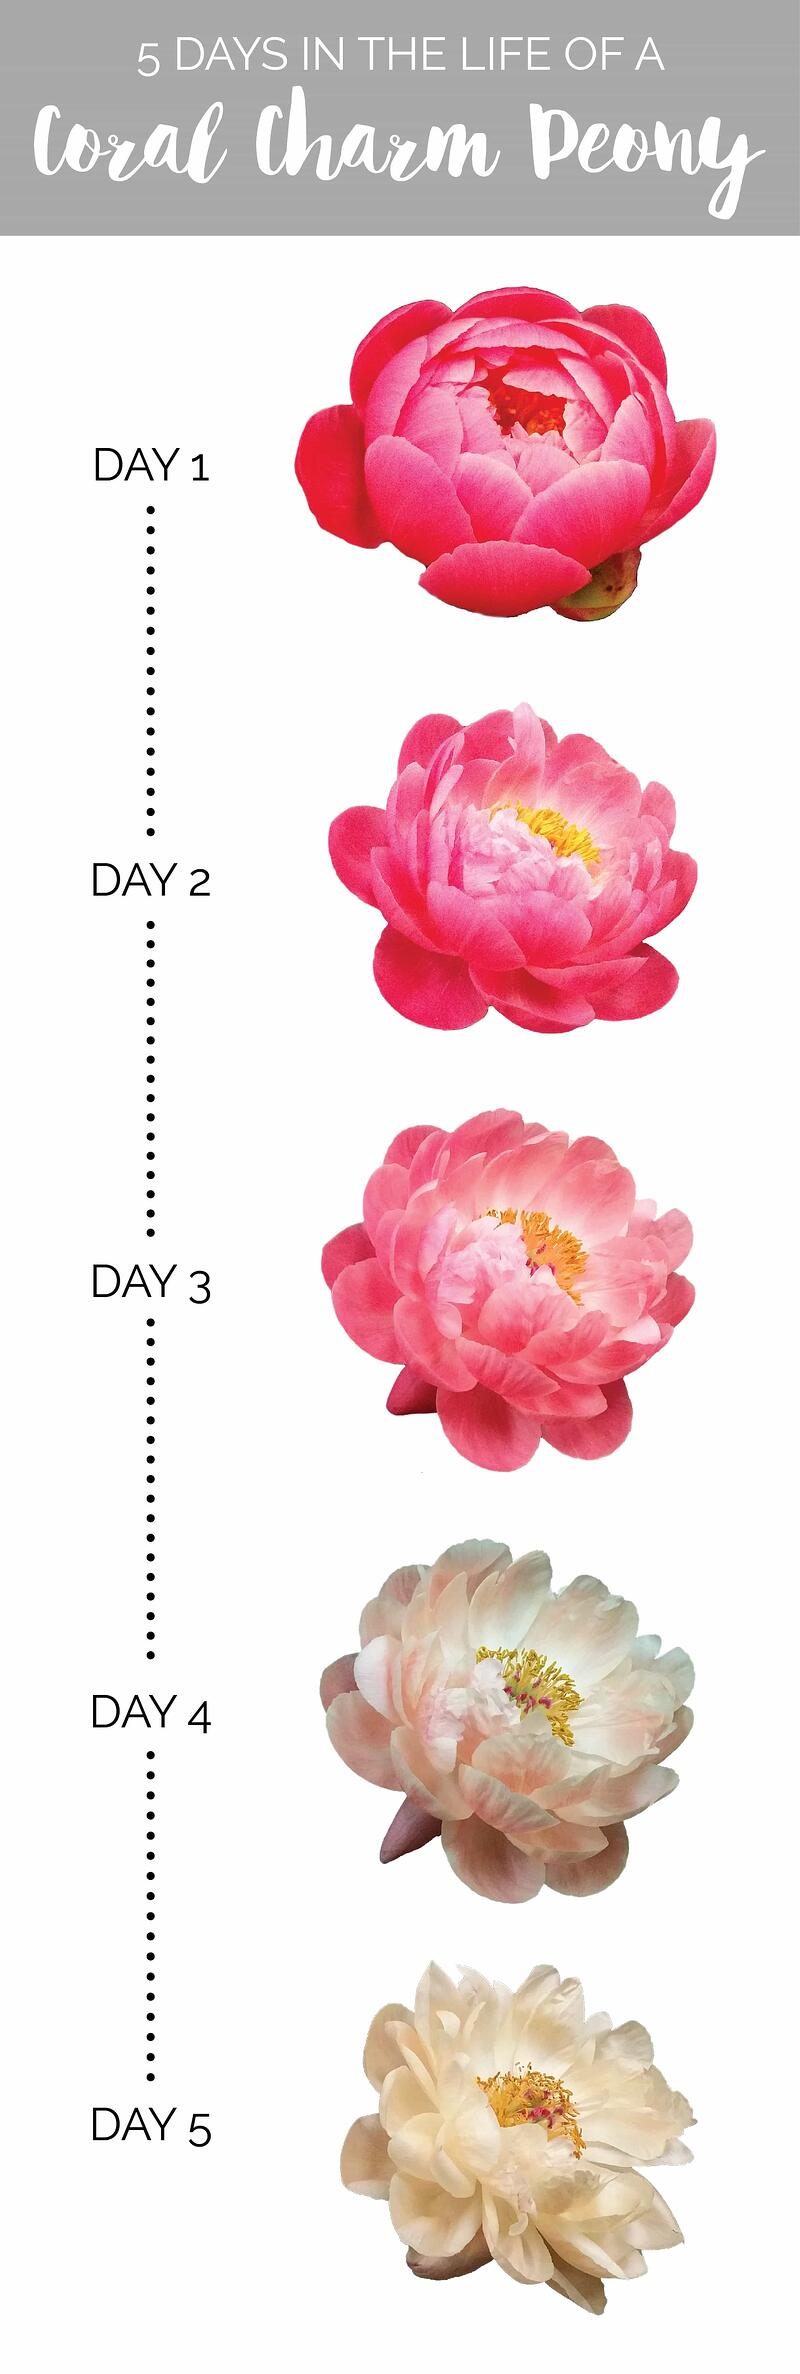 Life of a Coral Charm Peony